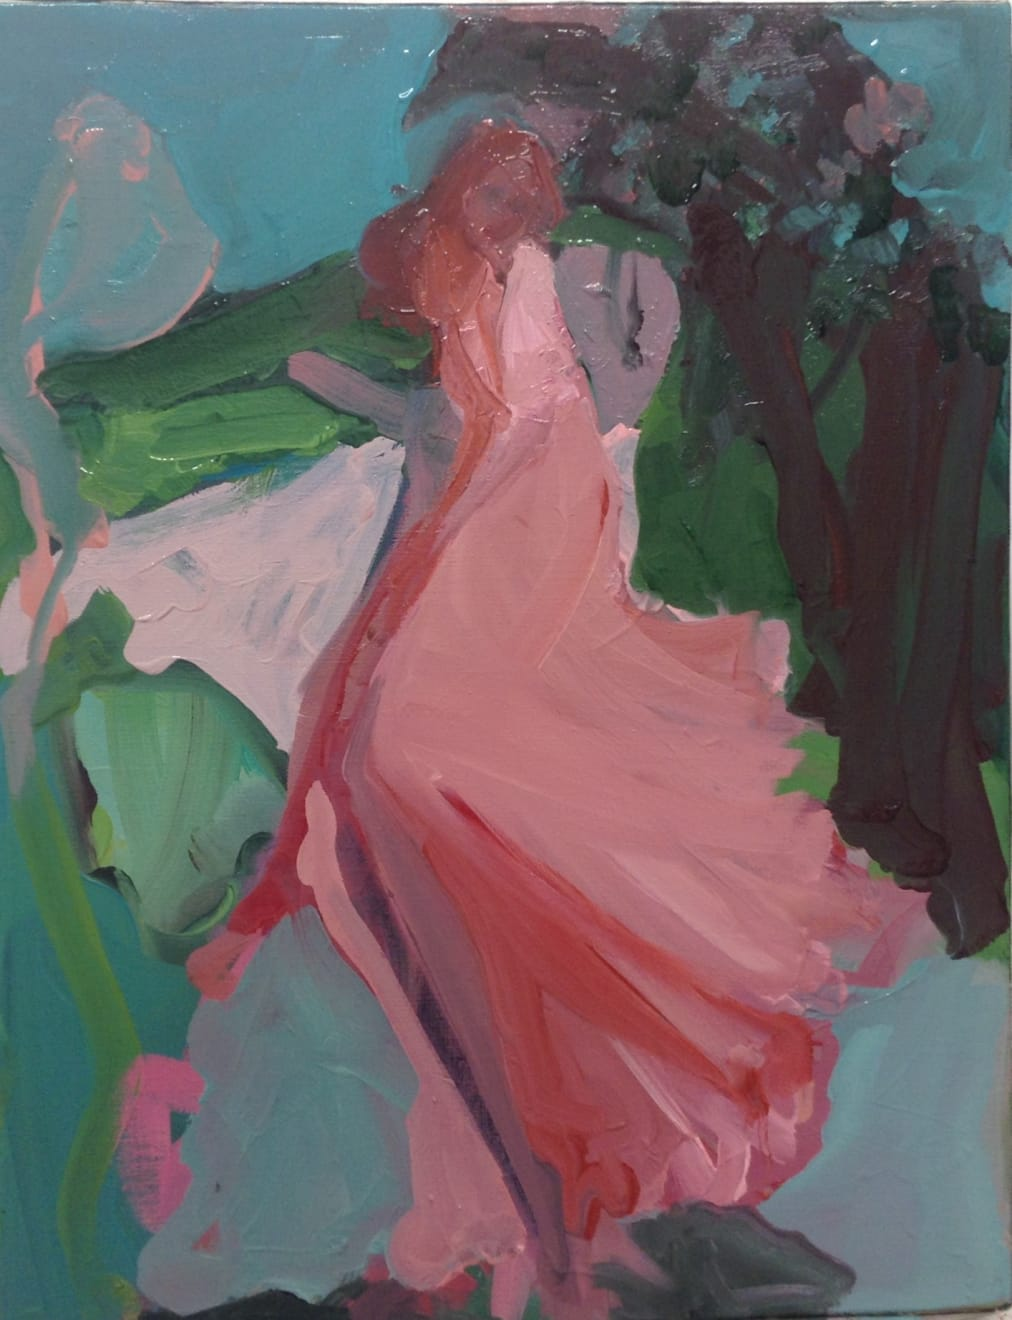 Elaine Speirs, Pink Dress, 2017